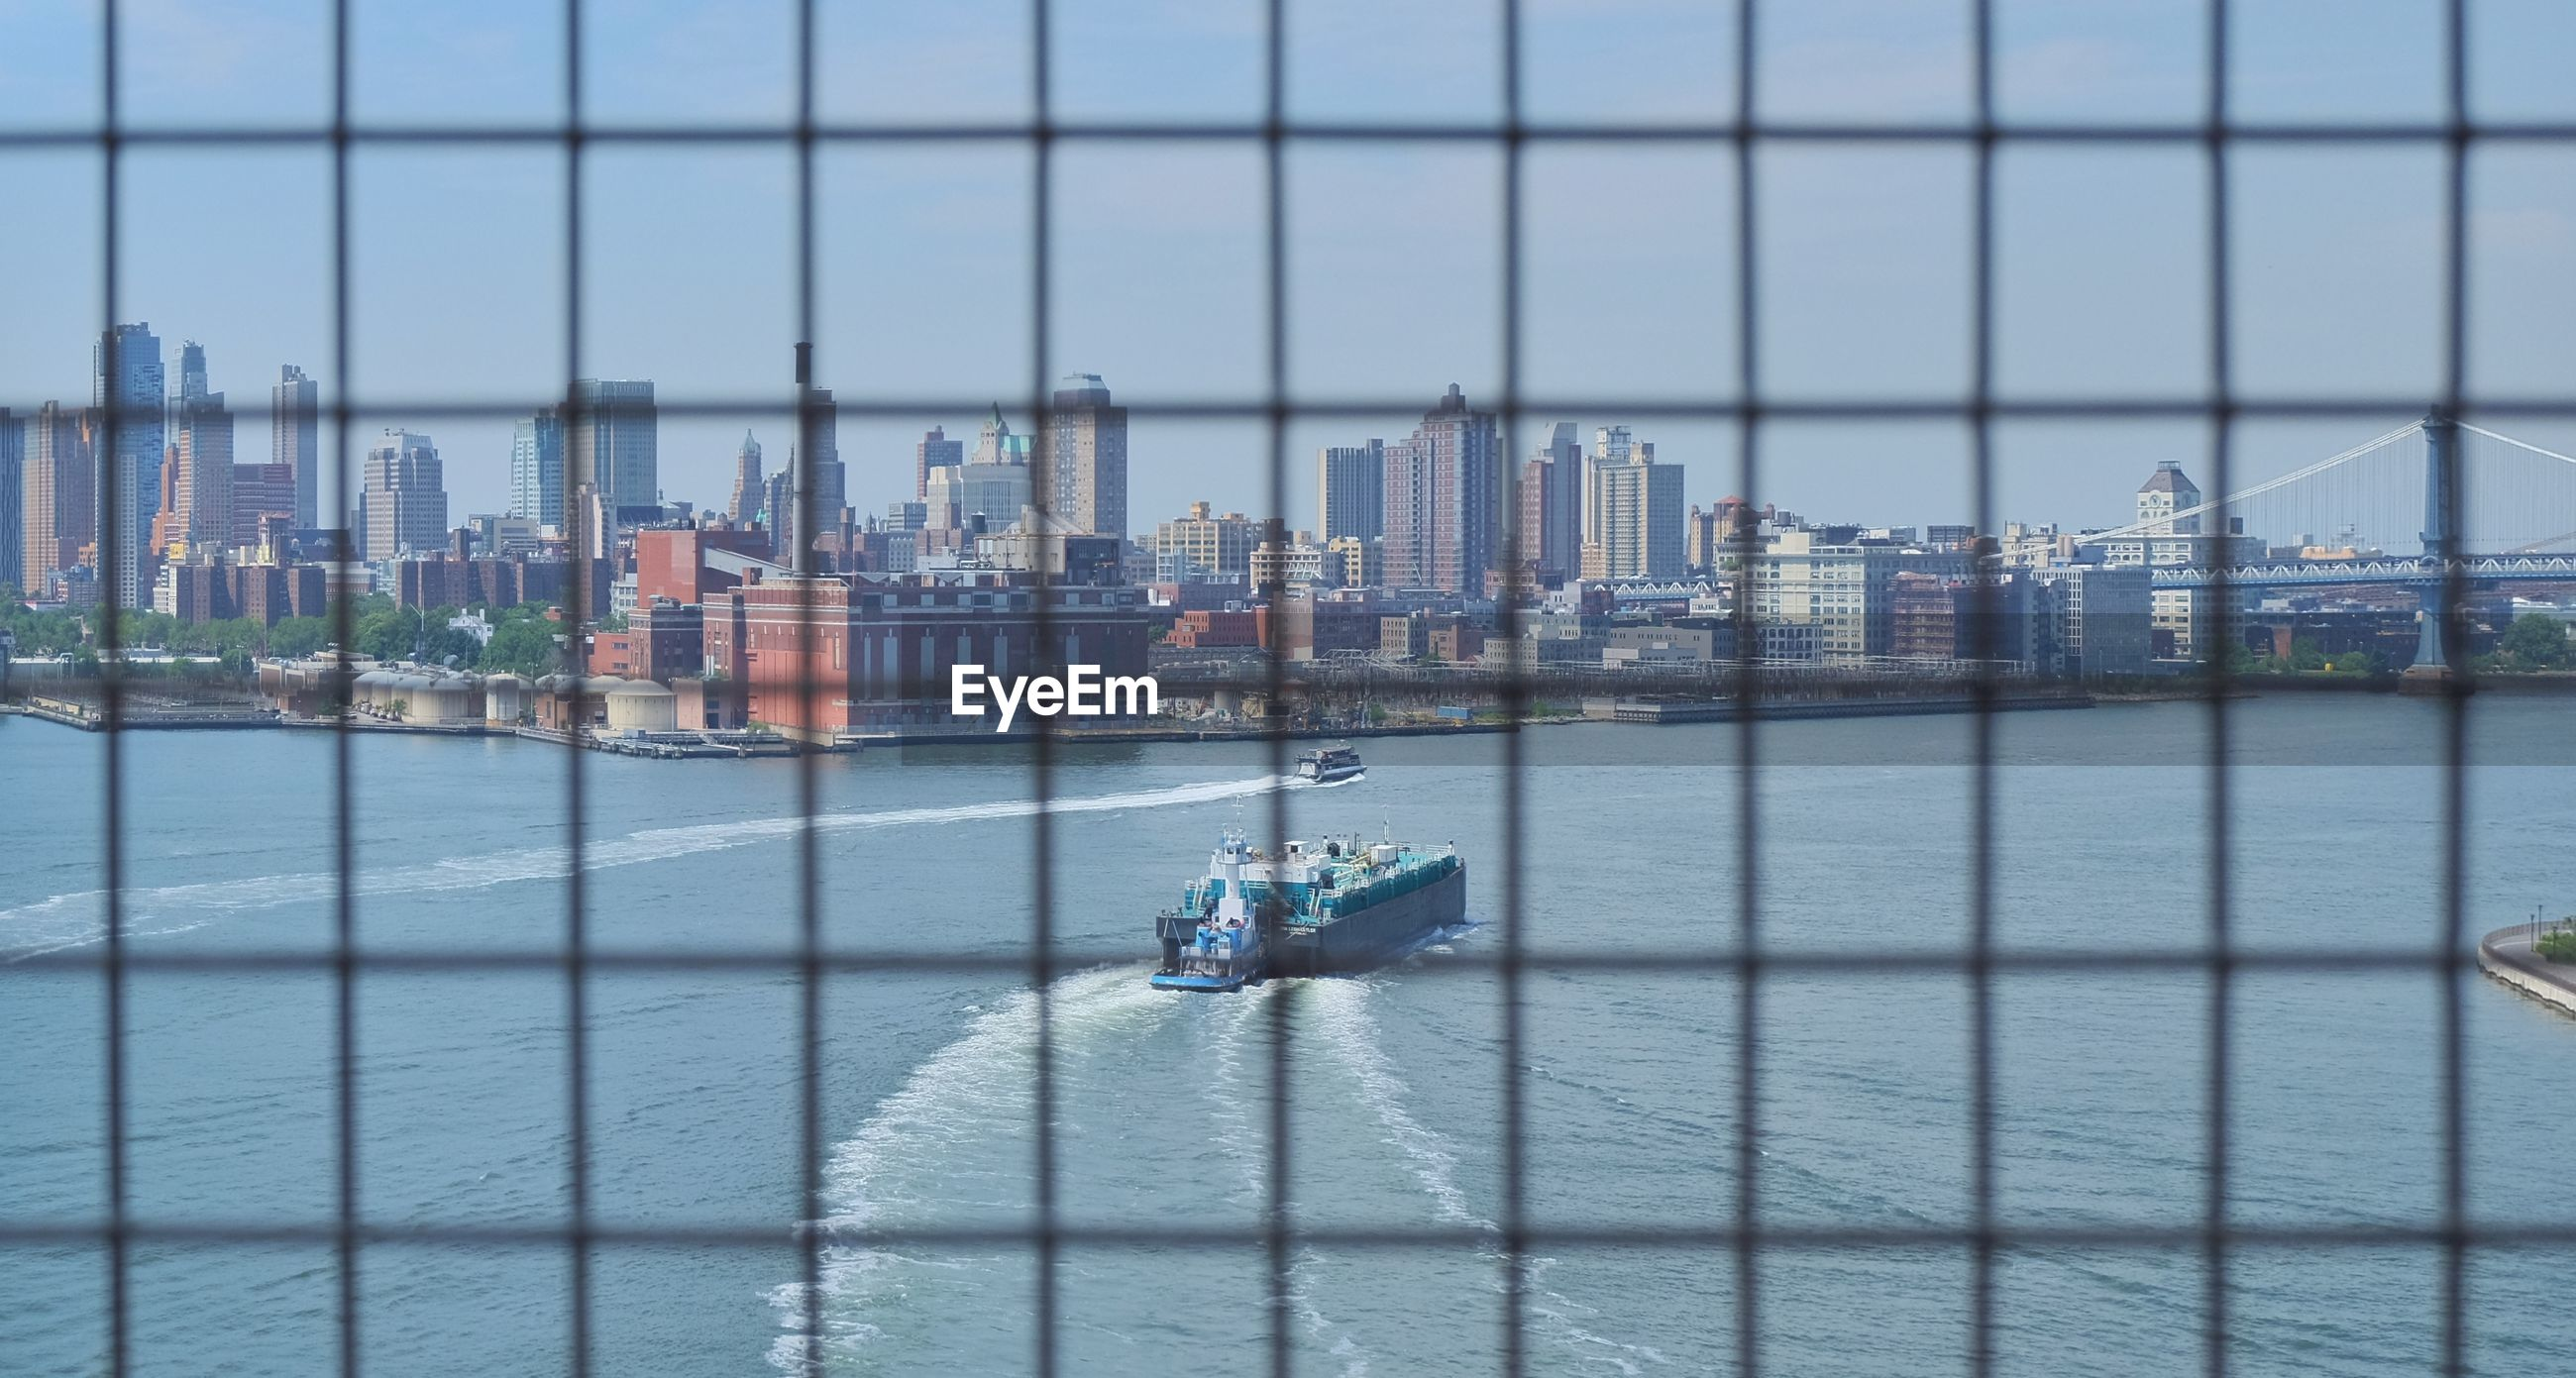 Ship sailing in sea by city skyline seen through fence